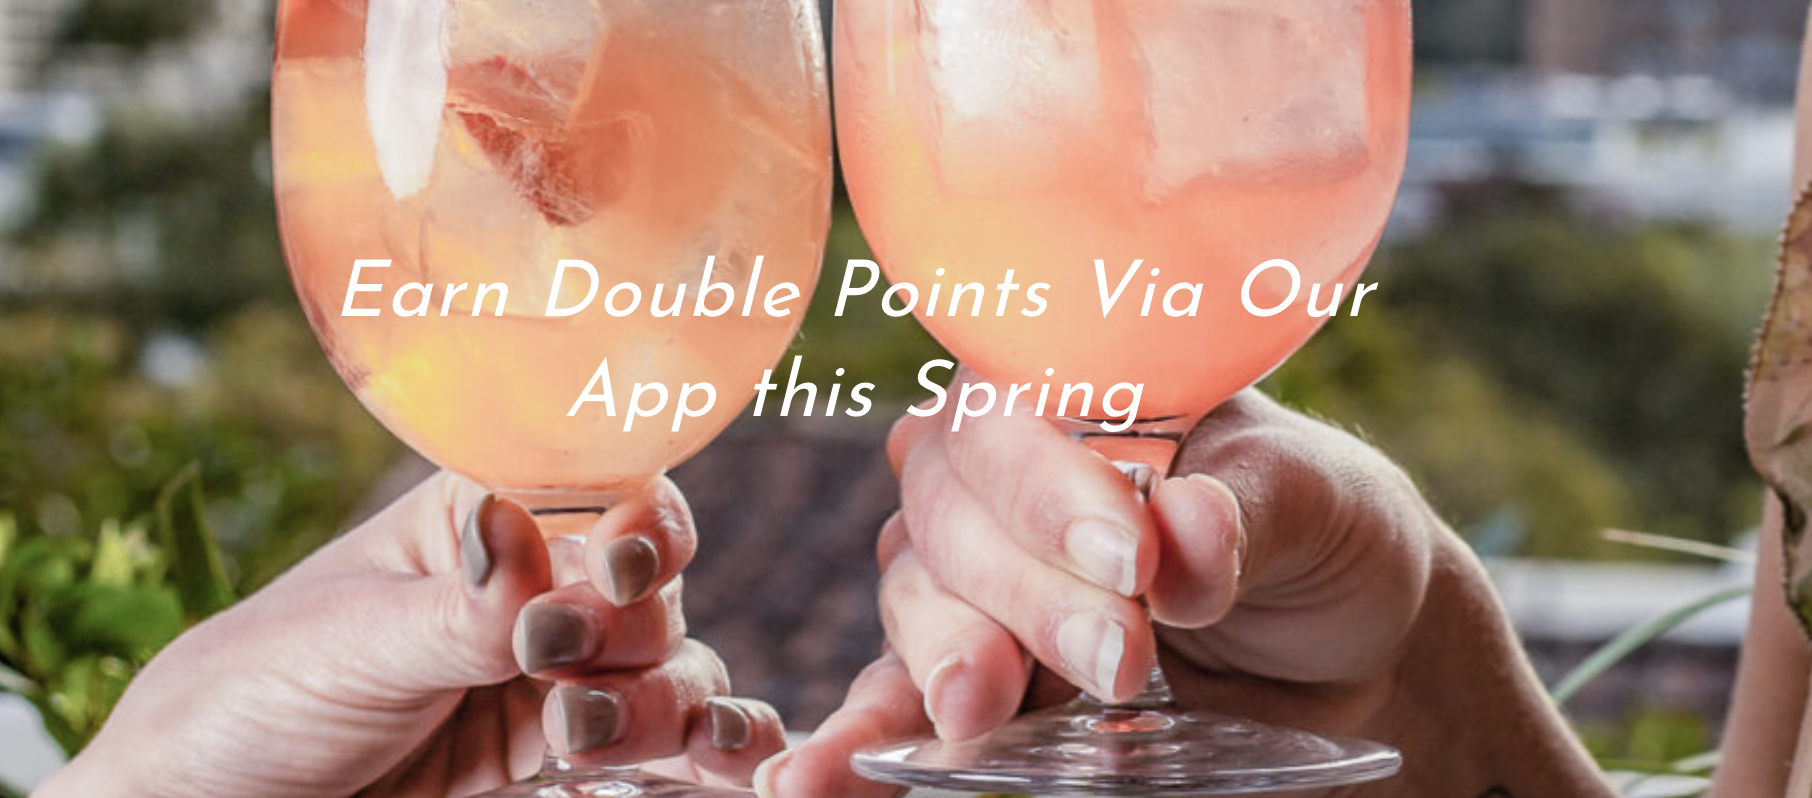 Earn double points on the app this Spring!